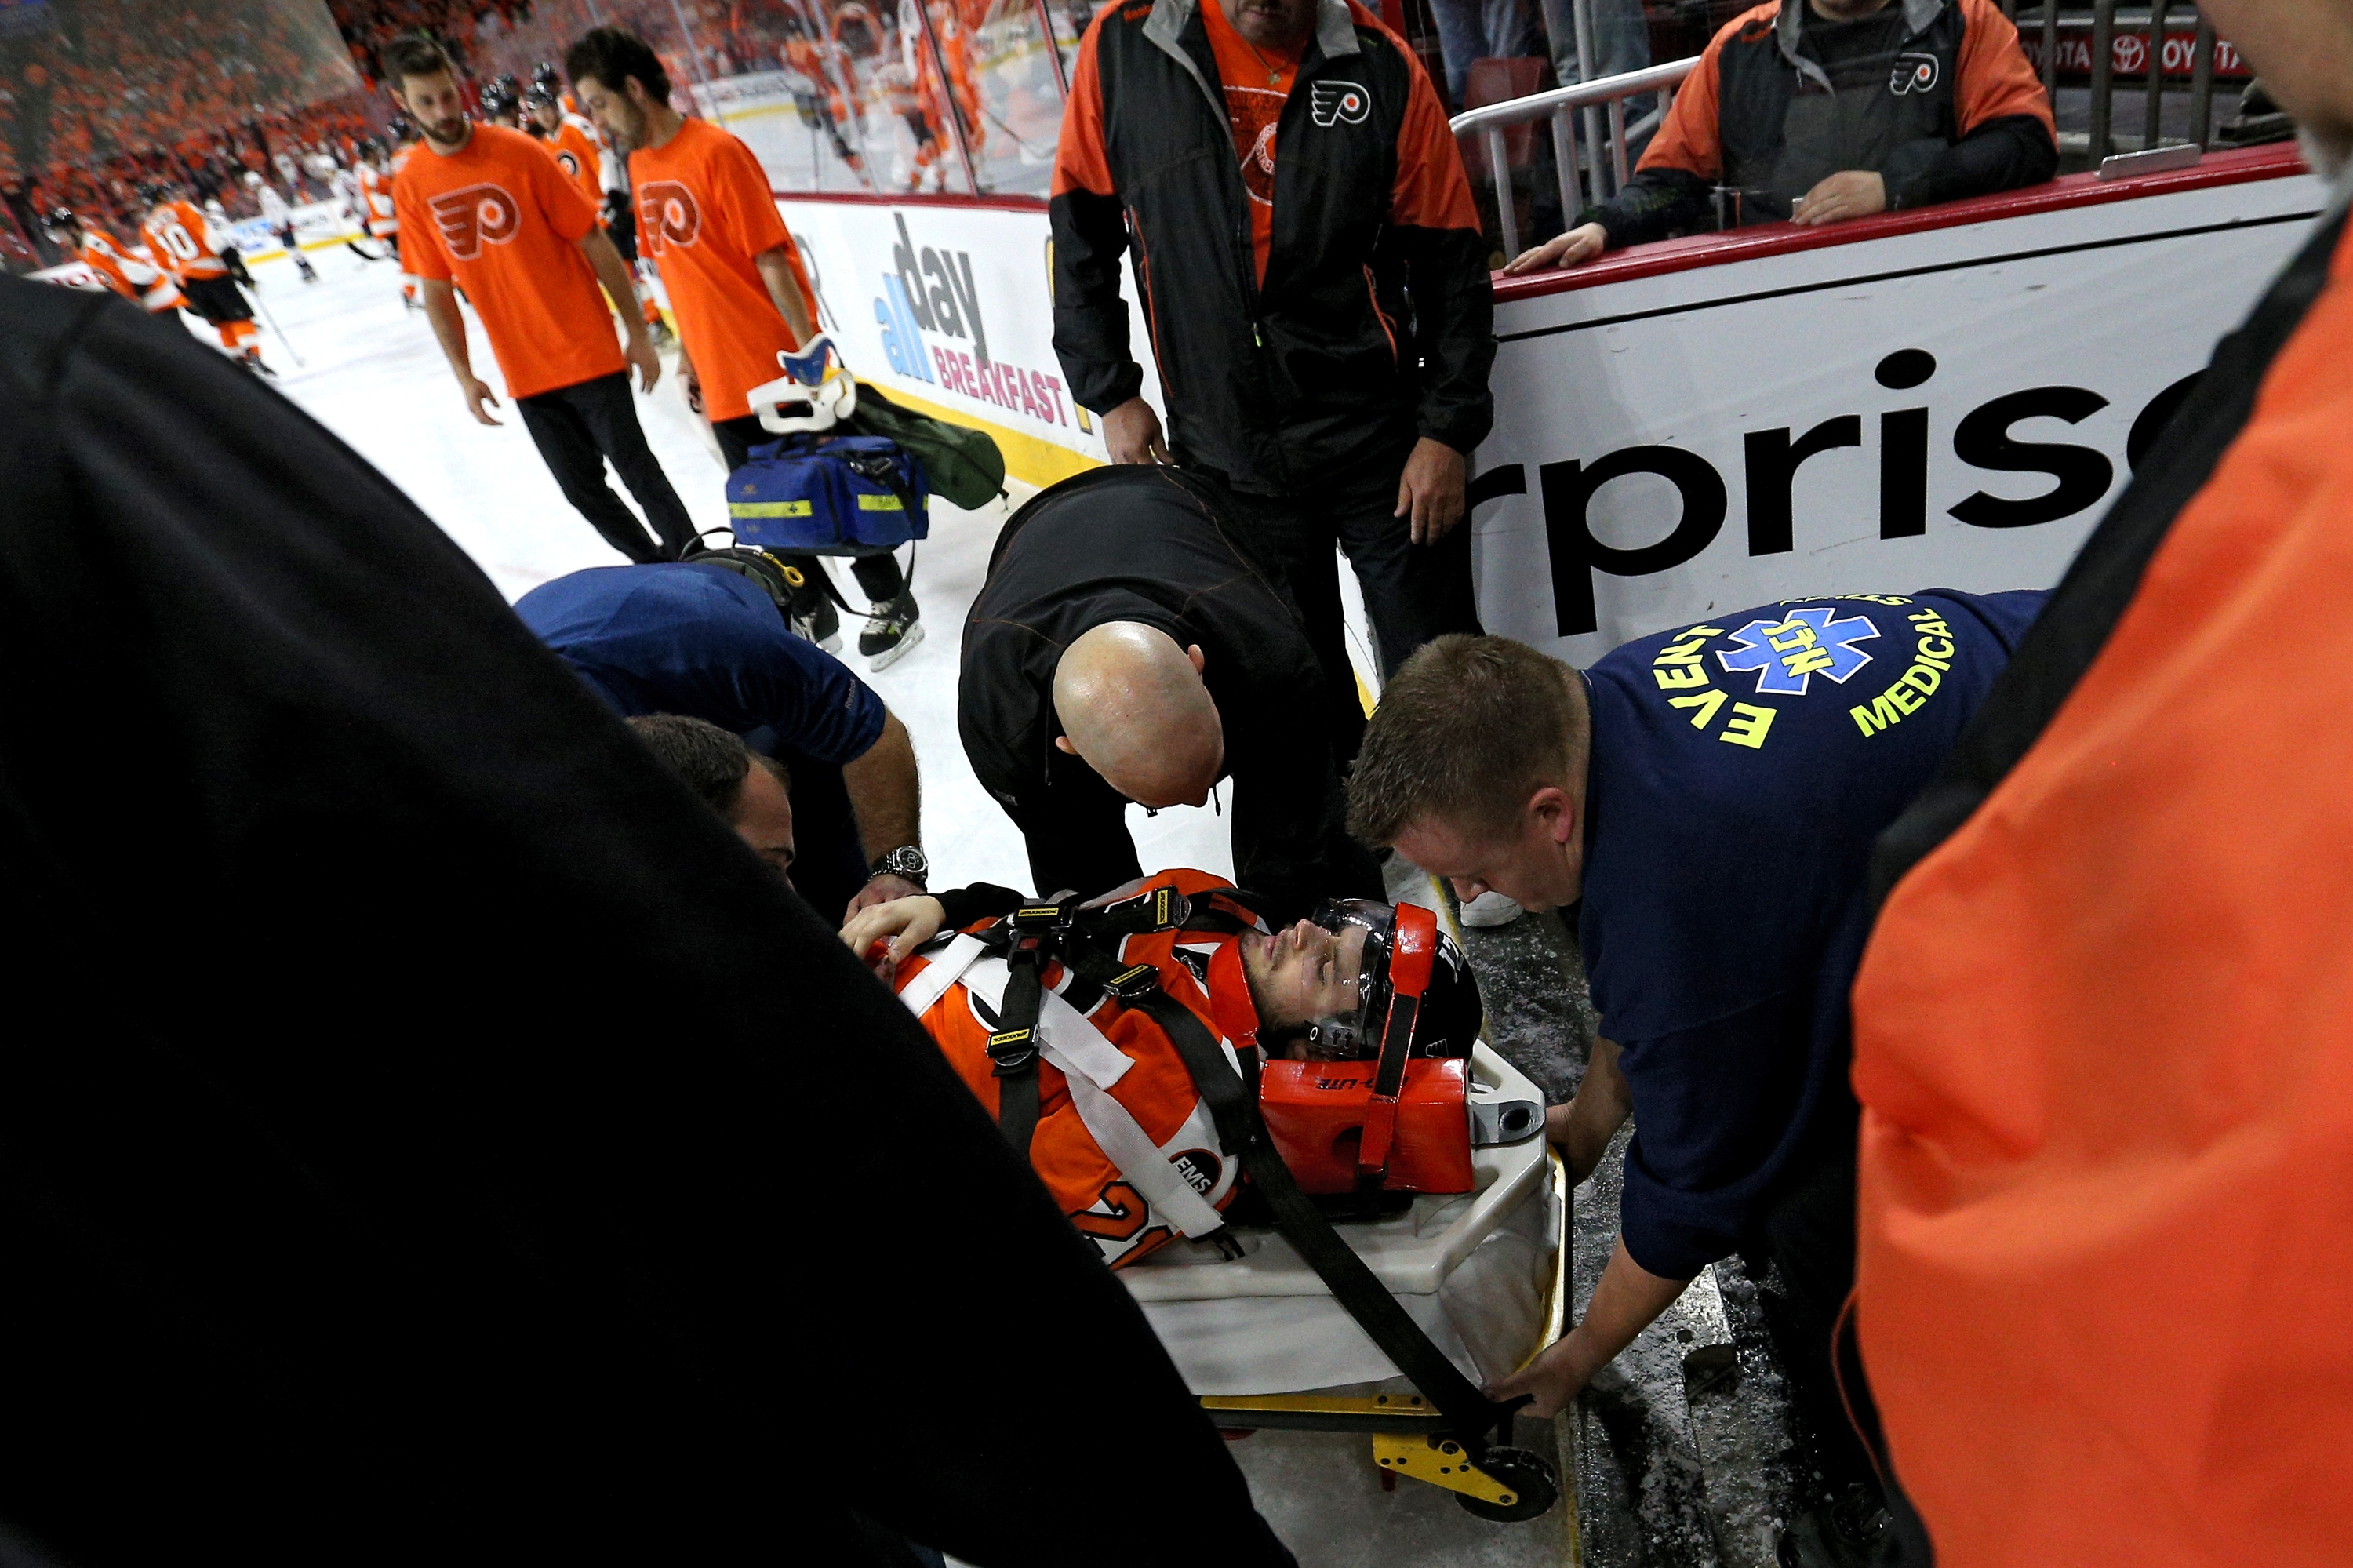 Flyers' Laughton Leaves On Stretcher; Staying At Hospital Overnight (Update)